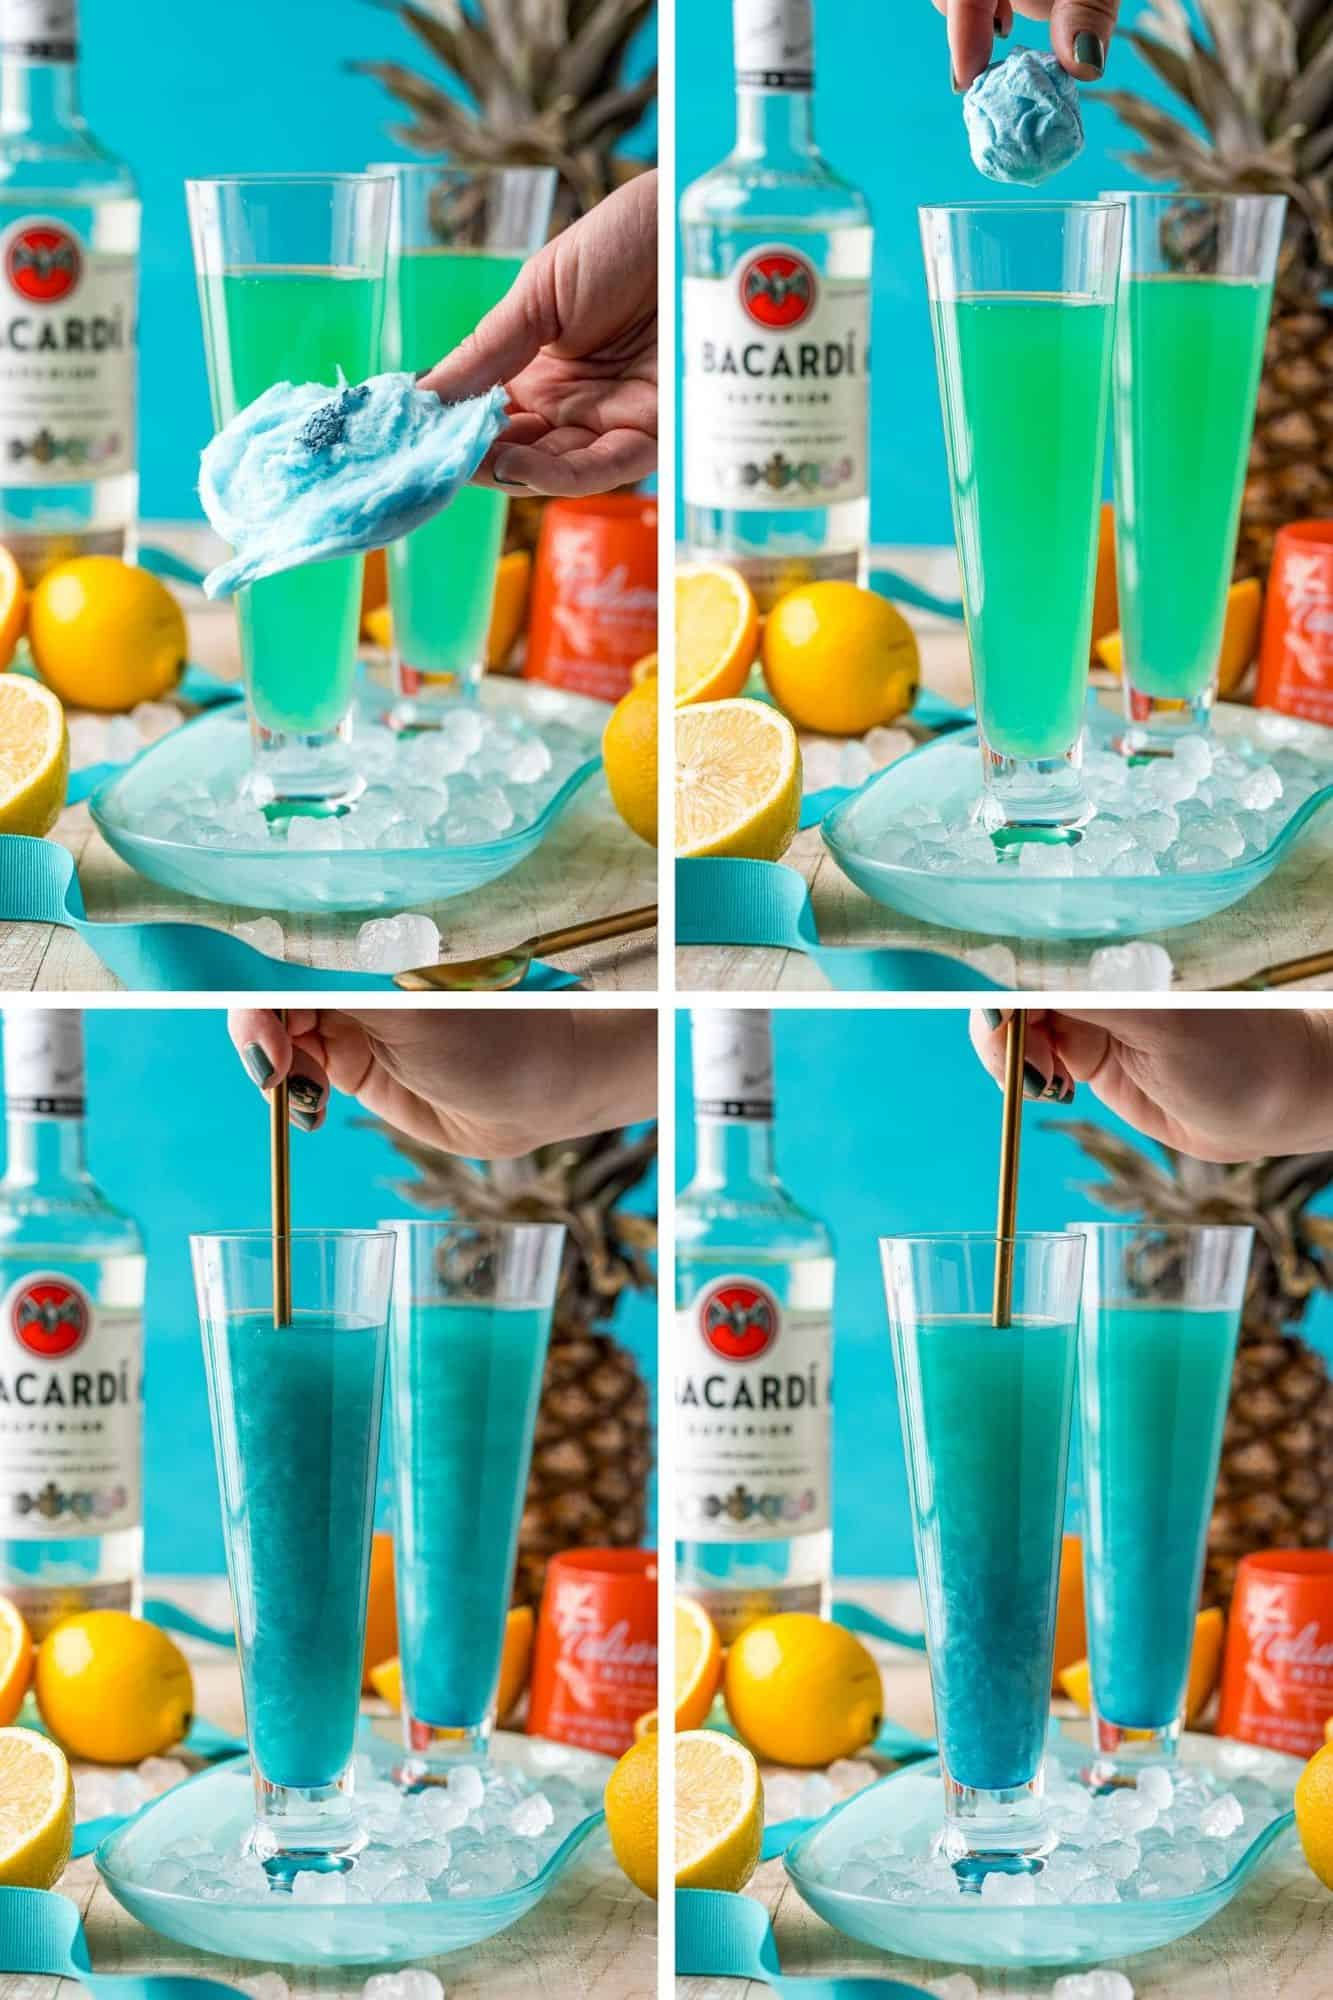 Four images showing how to add luster dust and cotton candy to a cocktail.